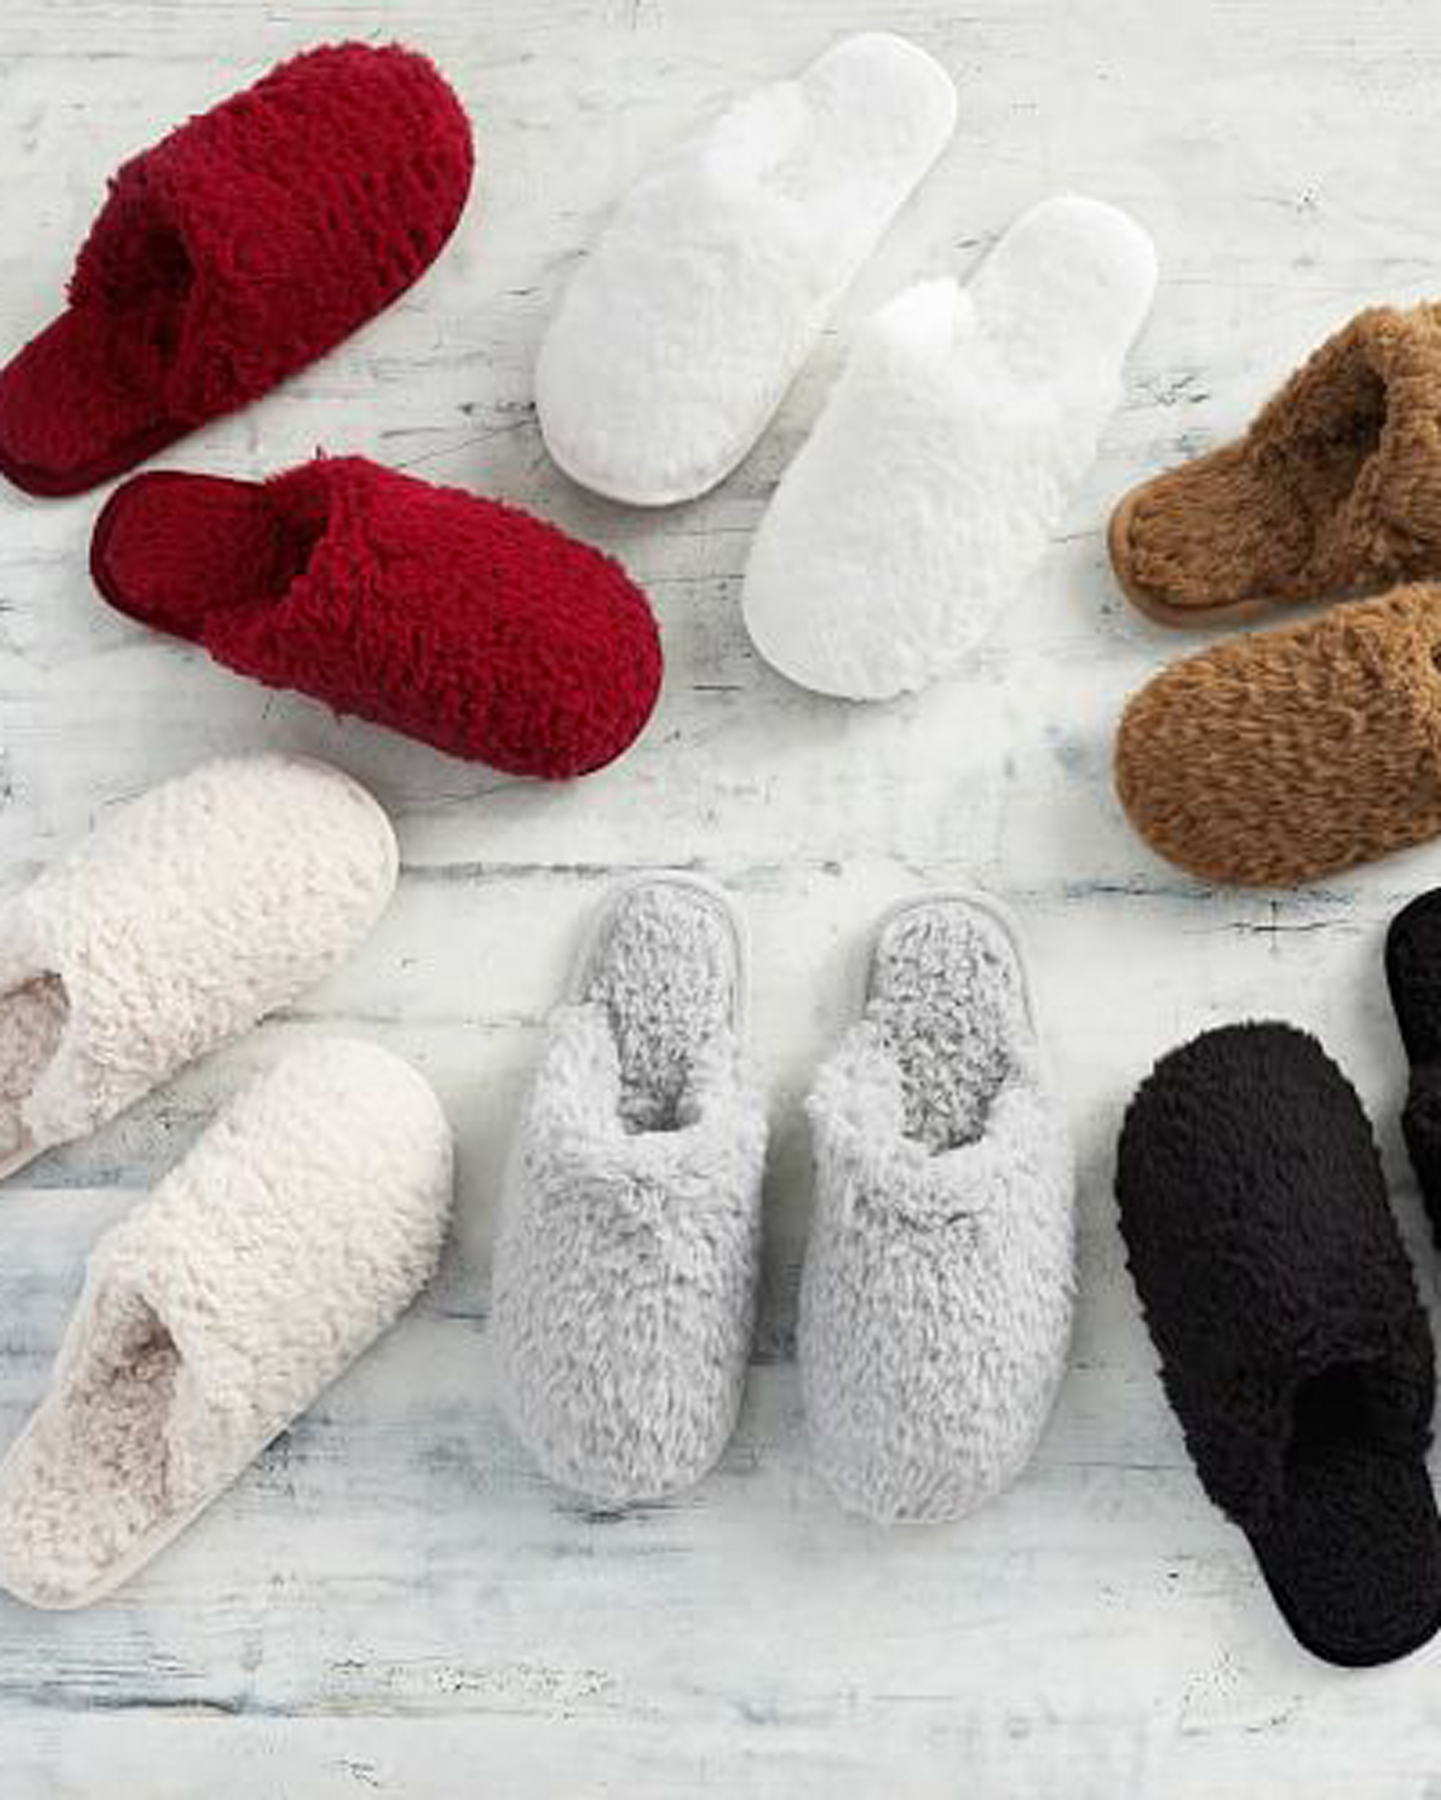 Cheap Christmas Gifts: Teddy Bear faux fur slippers from Pottery Barn